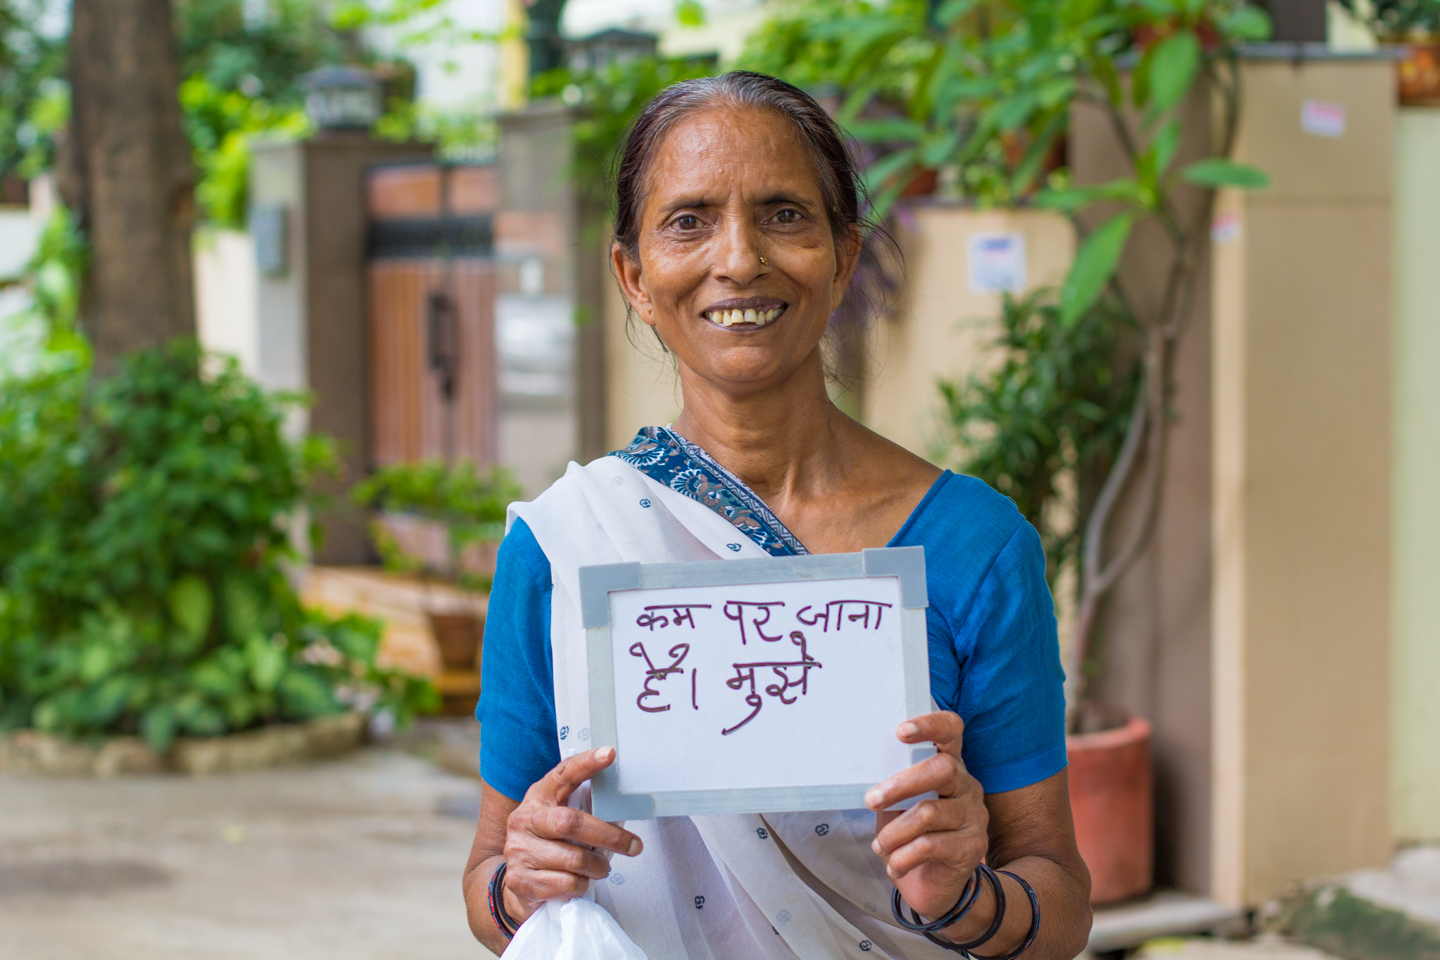 Jamna is a domestic worker in Sheikh Sarai, Delhi. Though she loves chai, she doesn't get much time to sit and enjoy it because she always has to go to work.